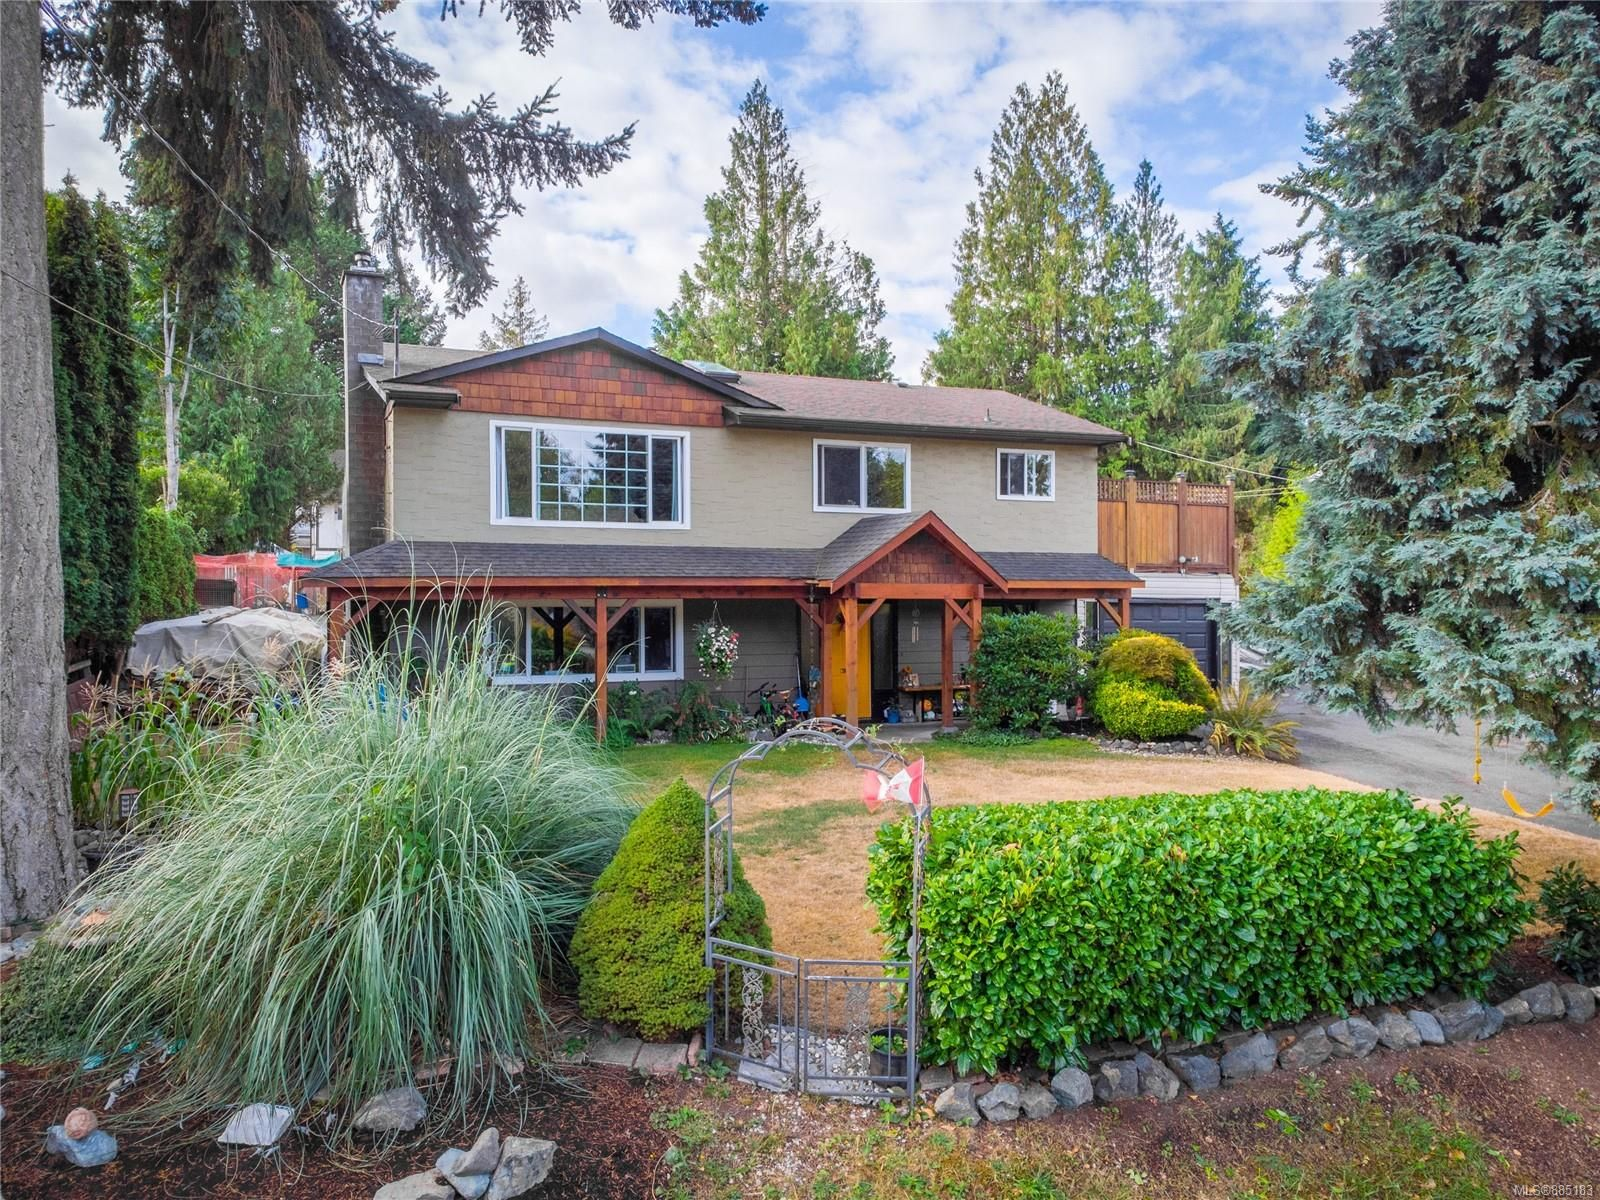 Main Photo: 7305 Lynn Dr in : Na Lower Lantzville House for sale (Nanaimo)  : MLS®# 885183